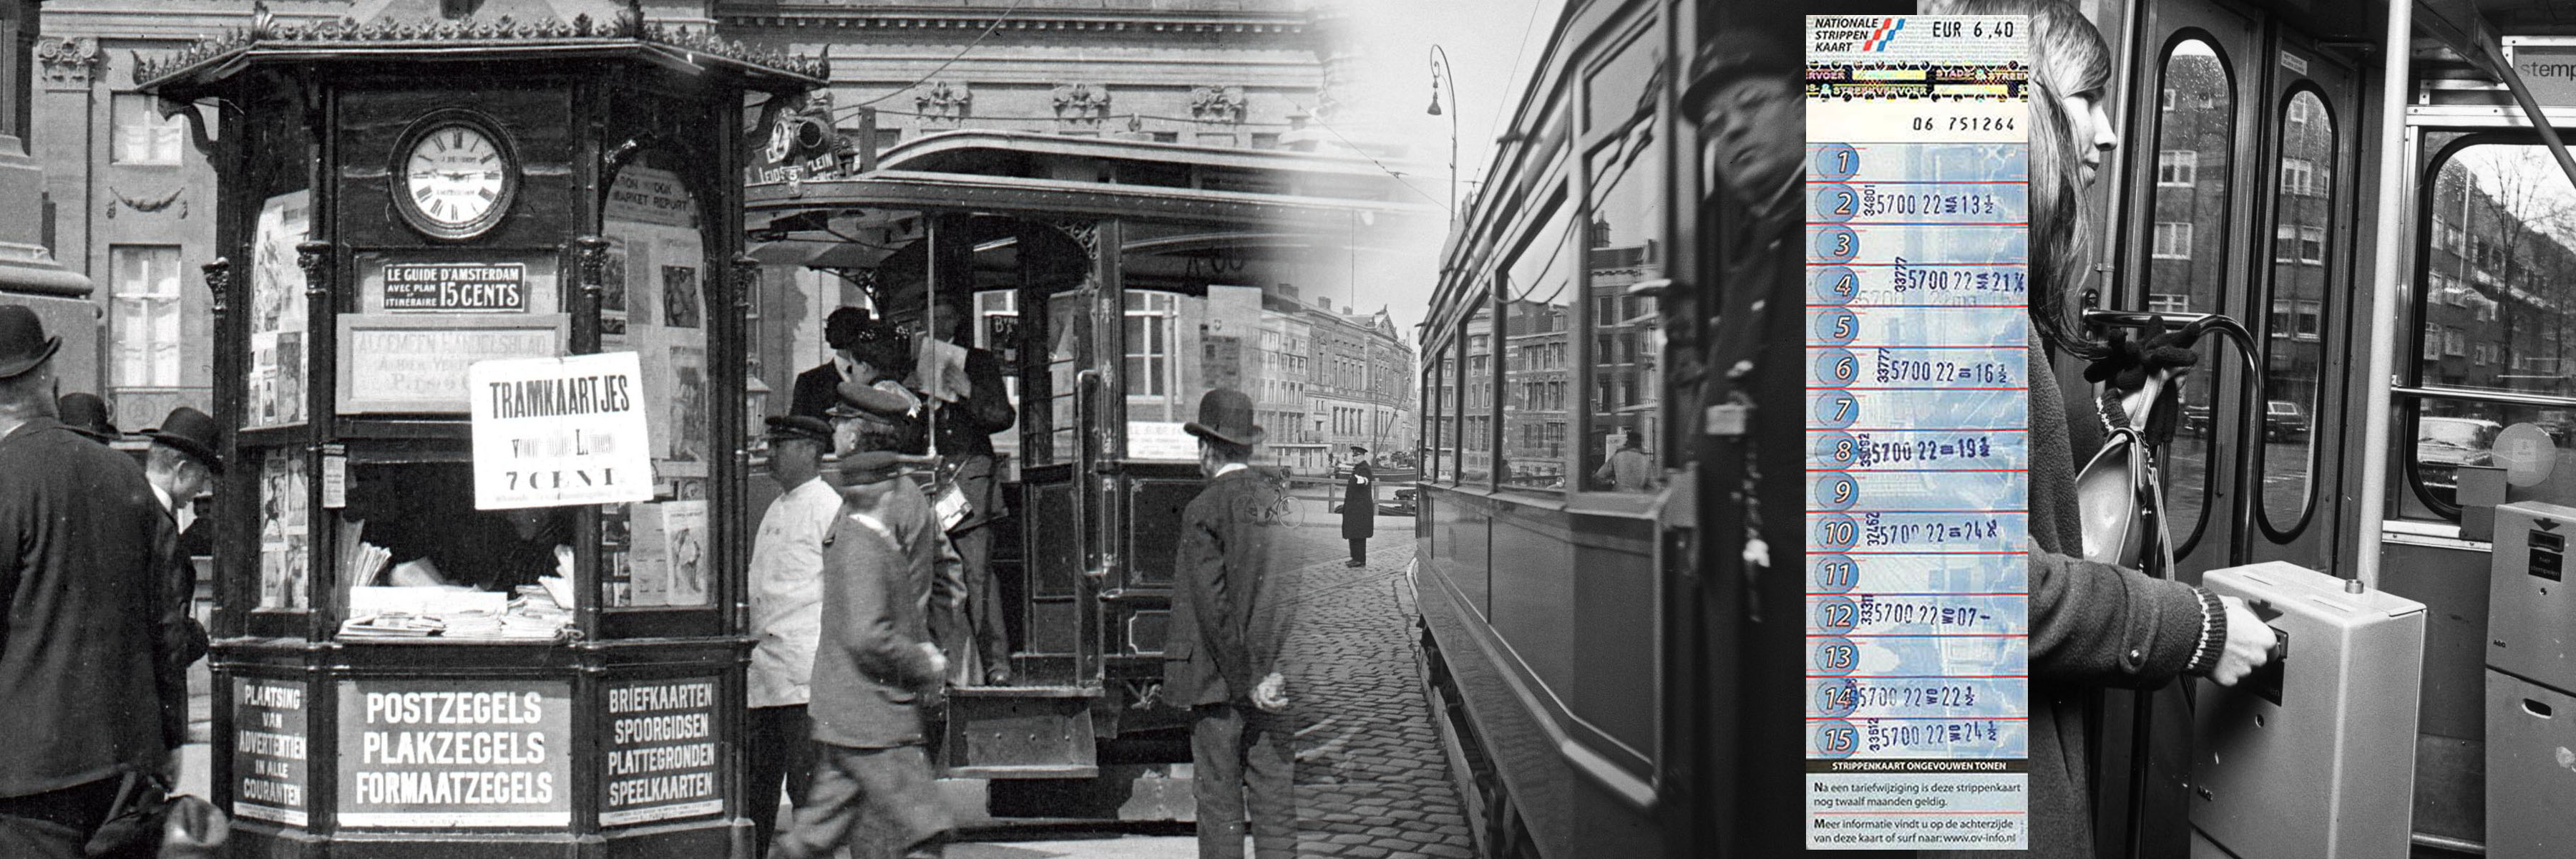 Kiosque selling tramway and other tickets at Dam square Amsterdam and open balcony tram with conductor selling tickets as well.